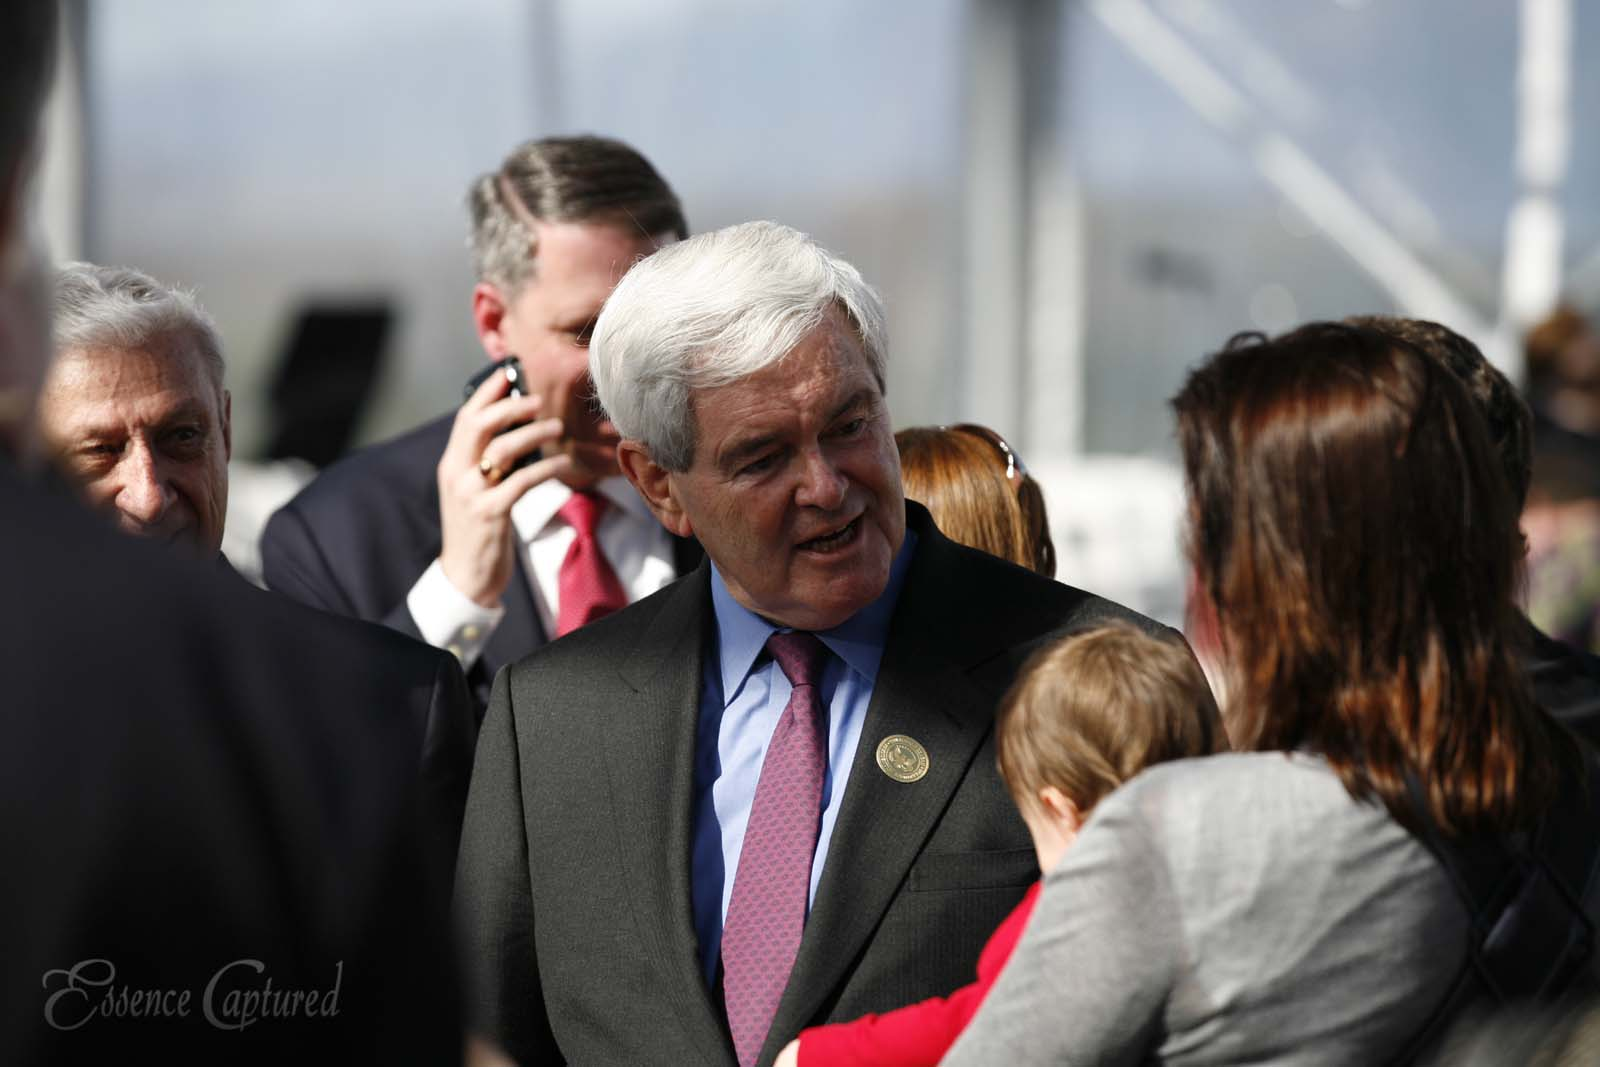 Newt Gingrich Former Speaker of the United States House of Representatives greets woman and baby at event